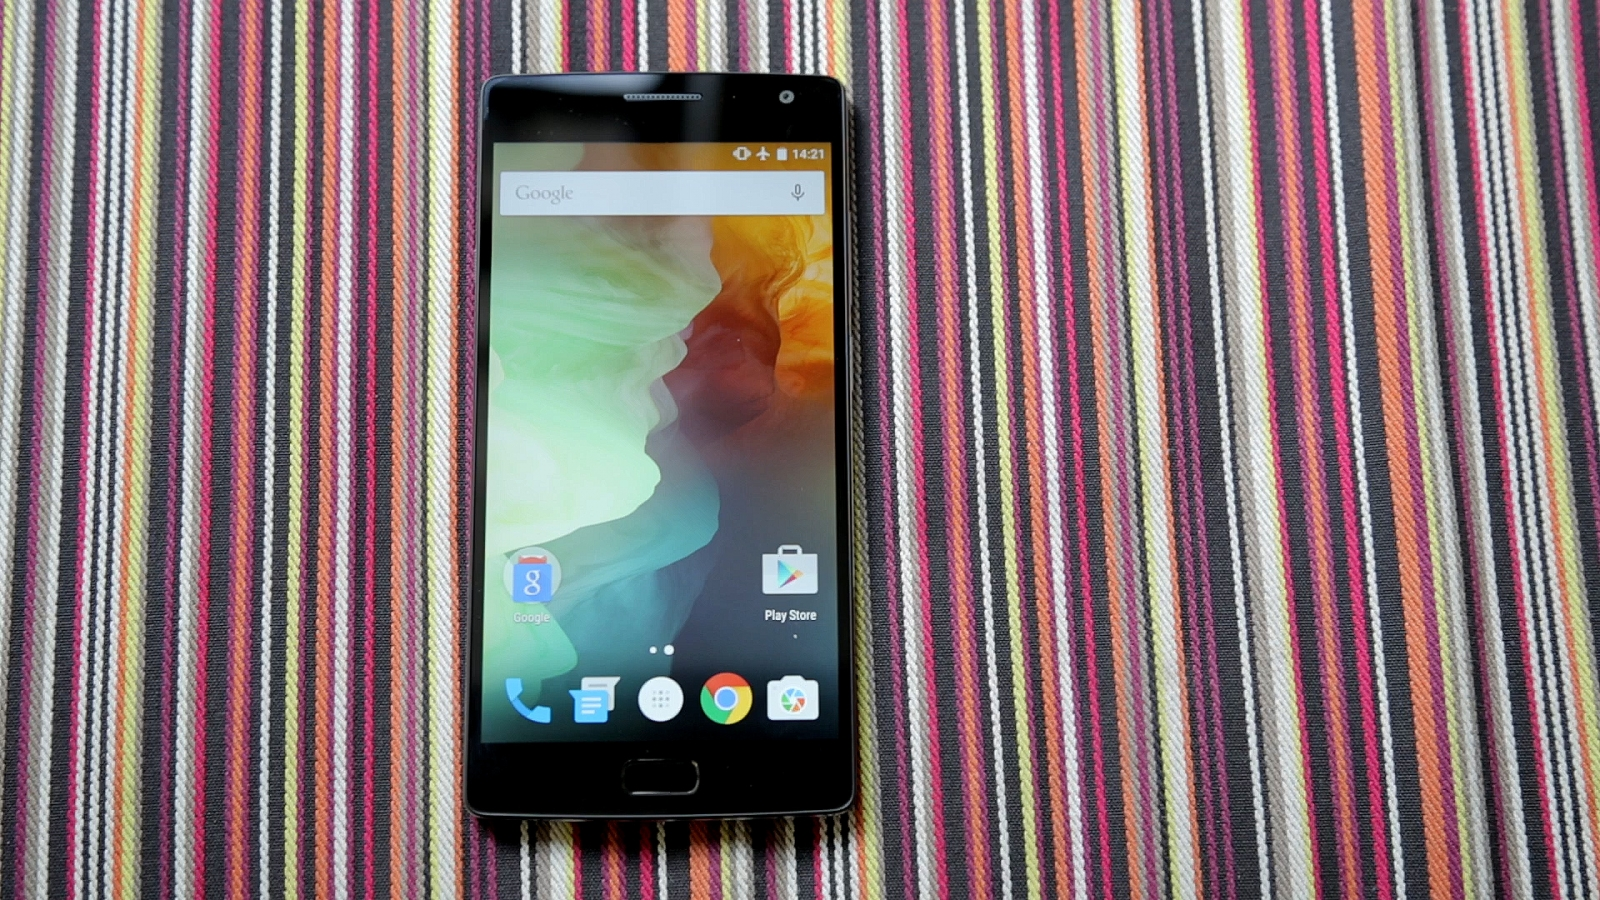 OnePlus 2 goes on sale